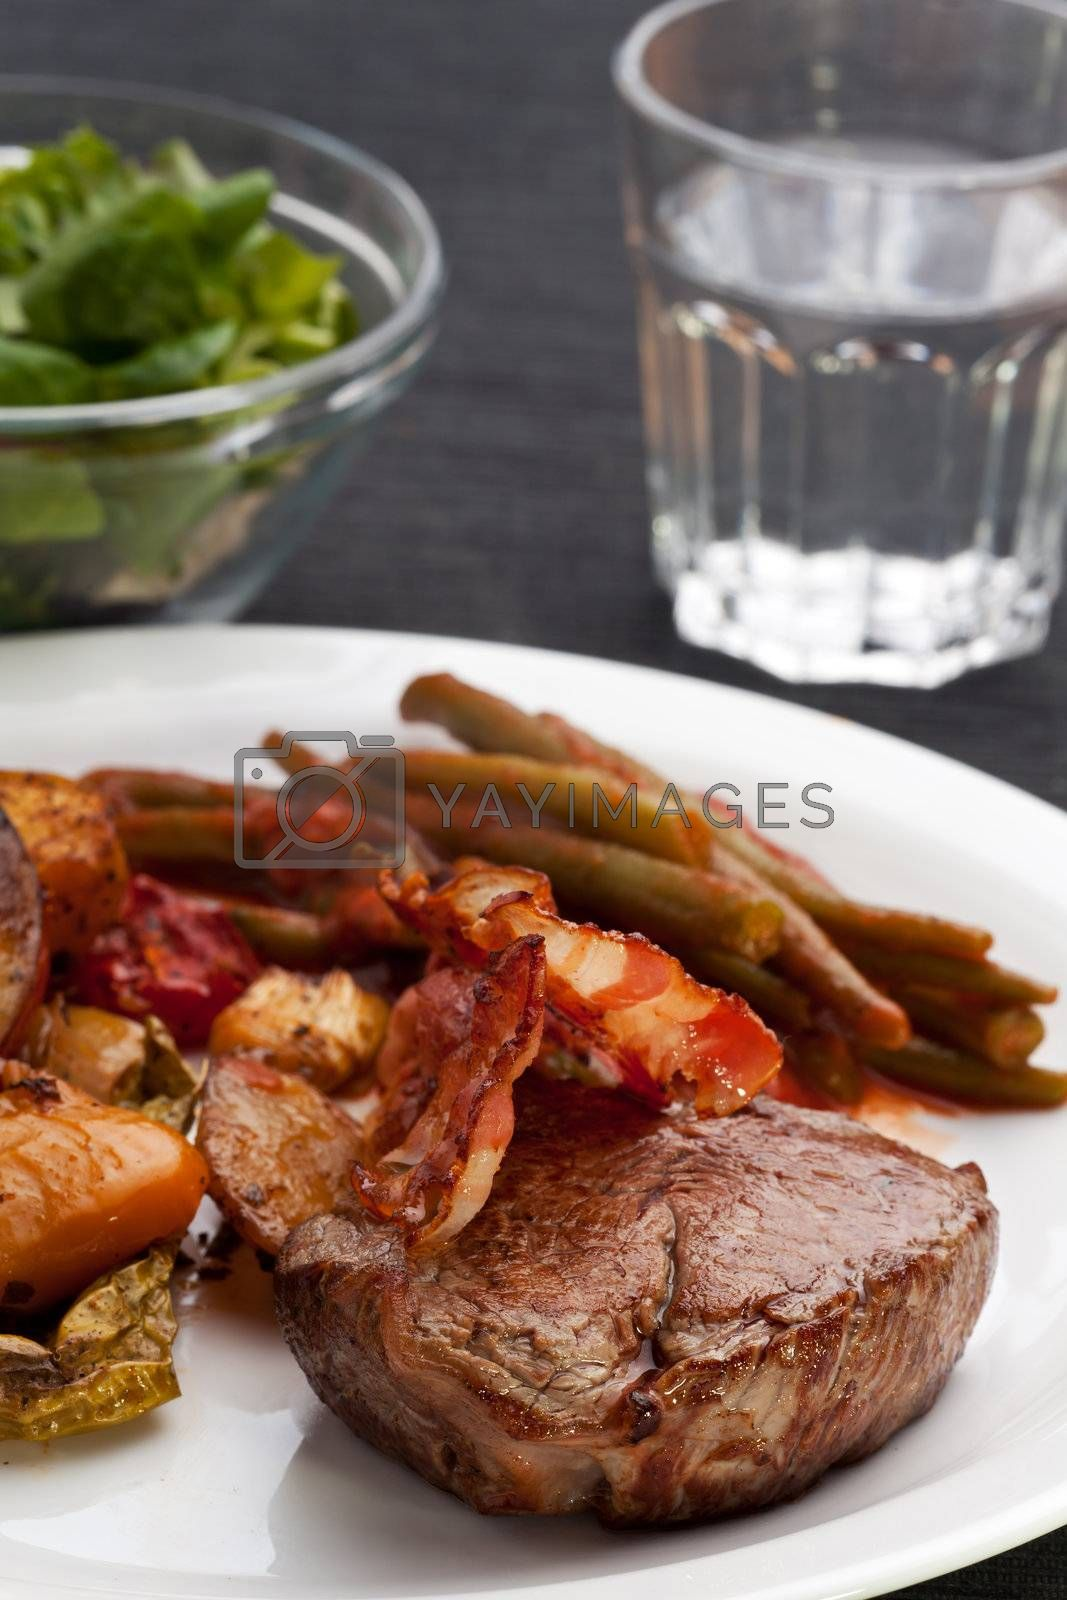 grilled steak with bacon stripes by bernjuer